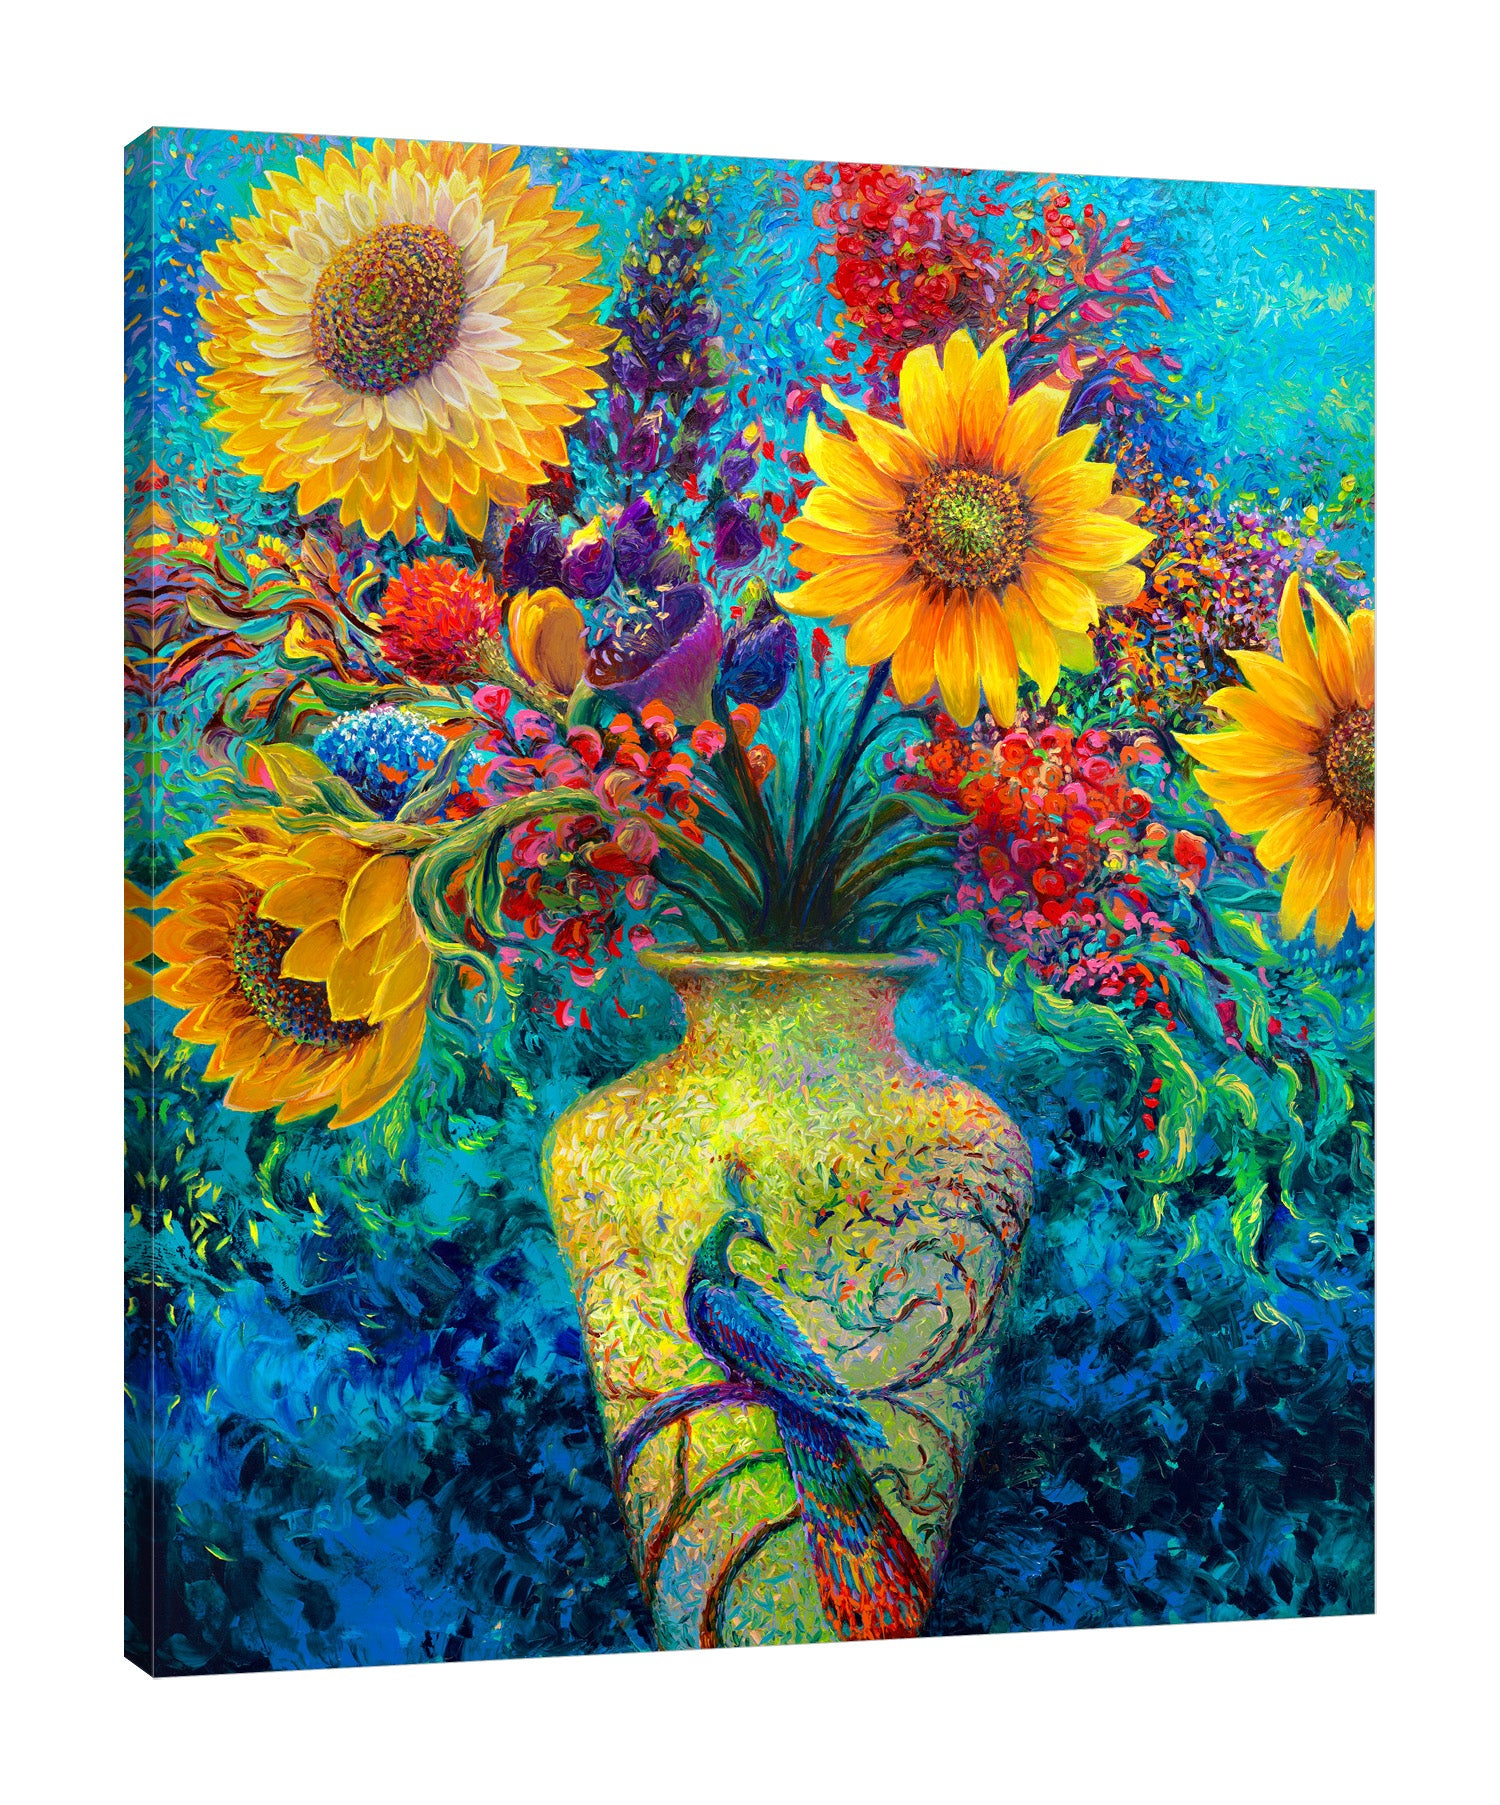 Iris-Scott,Modern & Contemporary,Floral & Botanical,Animals,sunflowers,sunflower,vases,vase,vessel,vessels,animals,animal,peacocks,peacock,blue,black,tree,flowers,flower,florals,floral,bouquets,bouquet,leaves,leaf,black,blue,yellow,